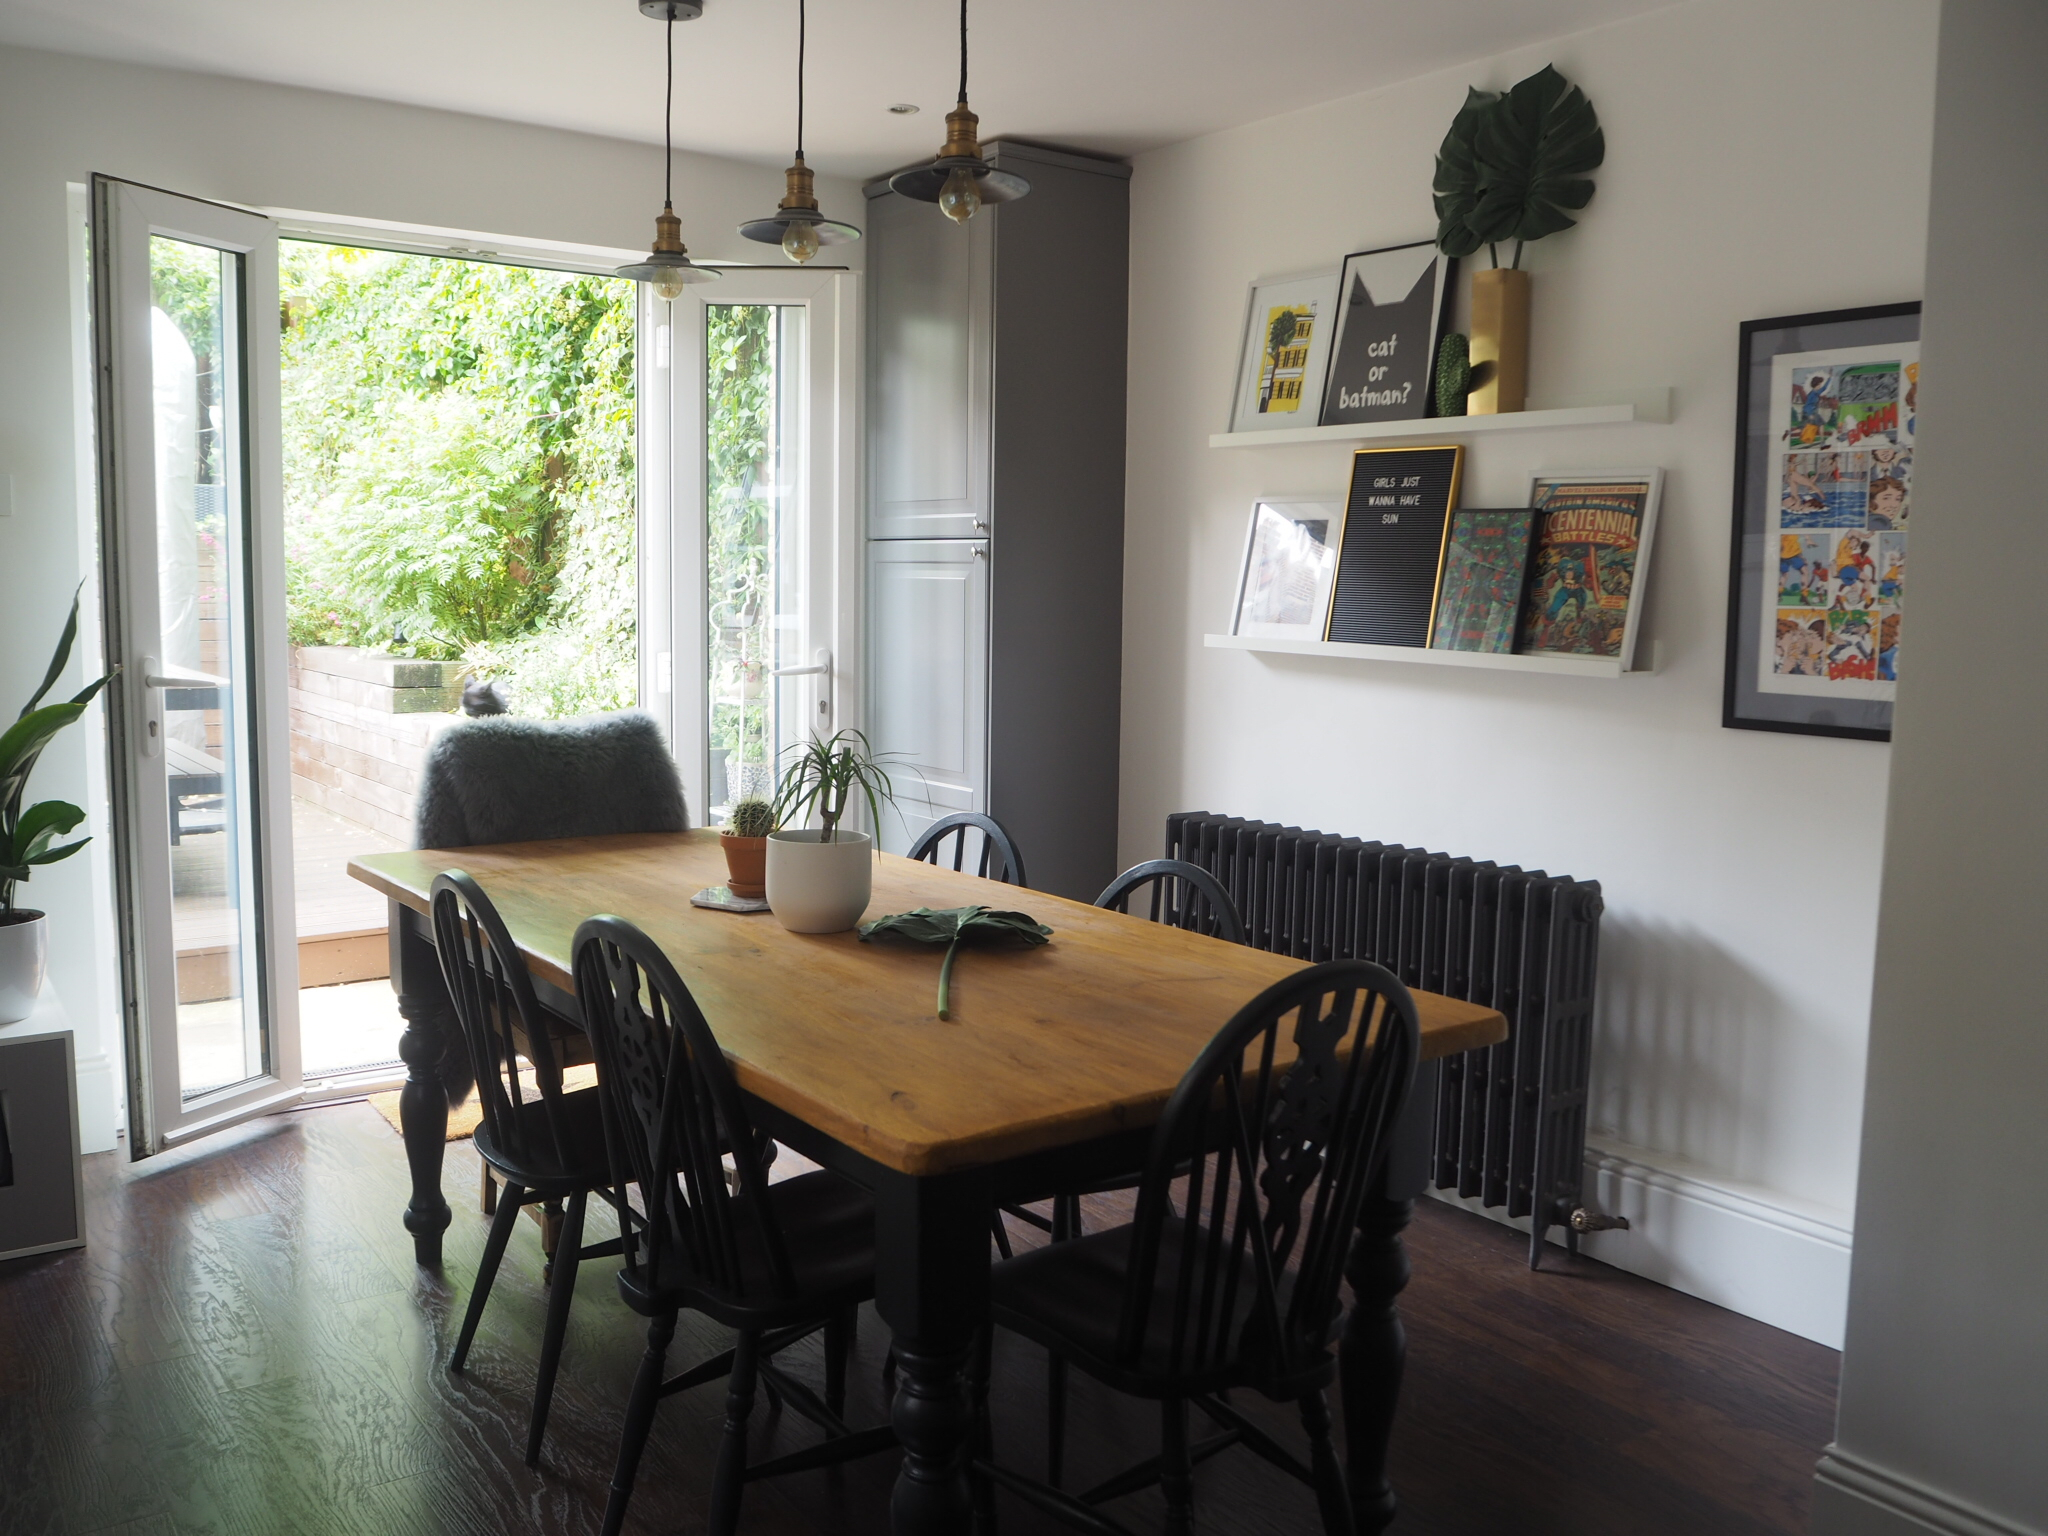 UP-CYCLED DINING TABLE